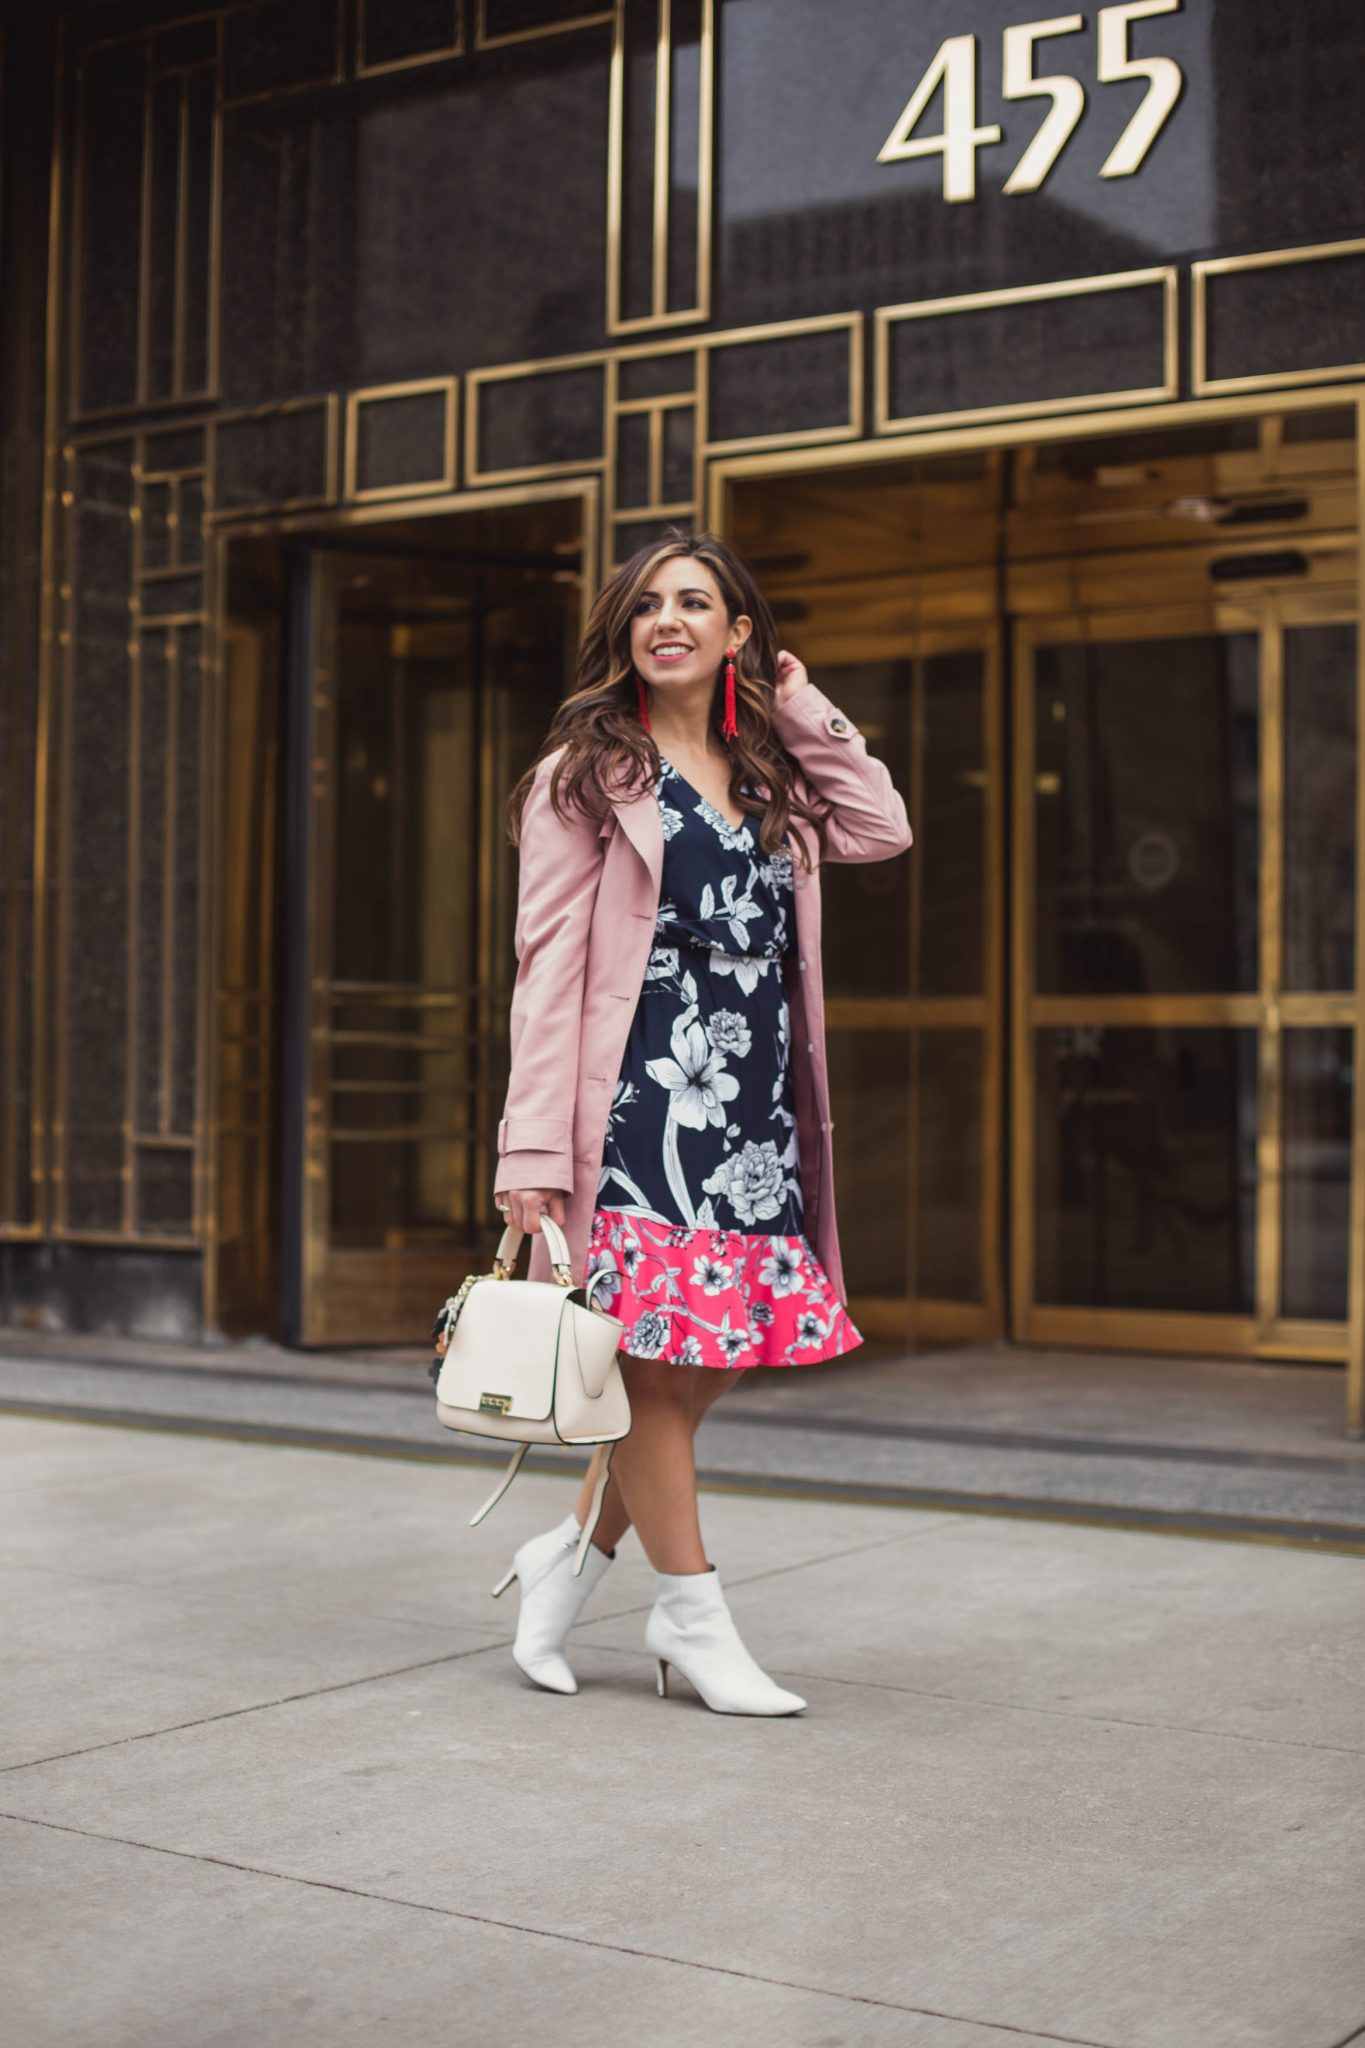 Spring Trench Coats styled by popular Chicago fashion blogger Glass of Glam